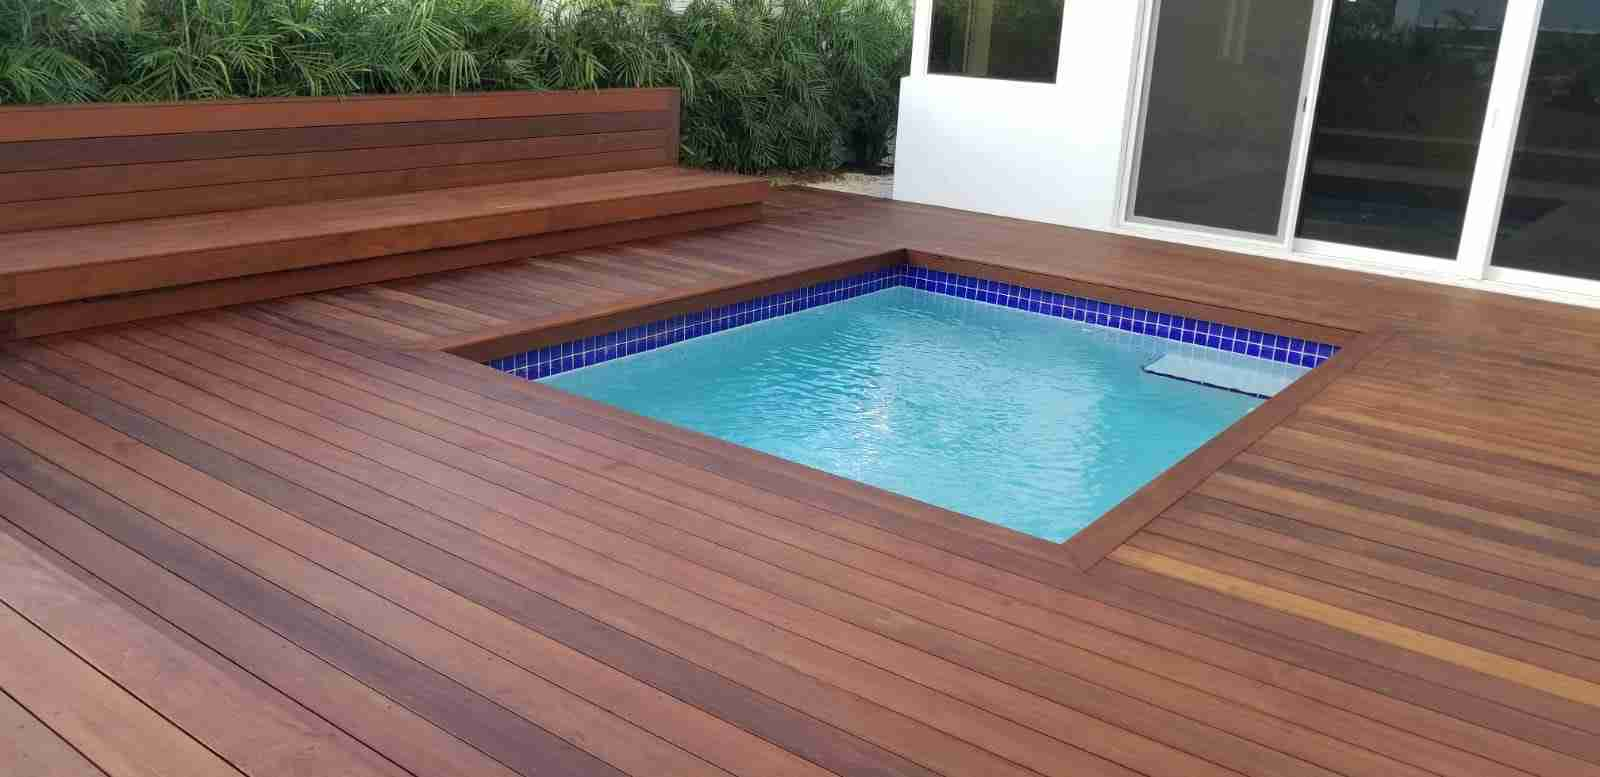 Ipe Wood Deck Brazilian Lumber